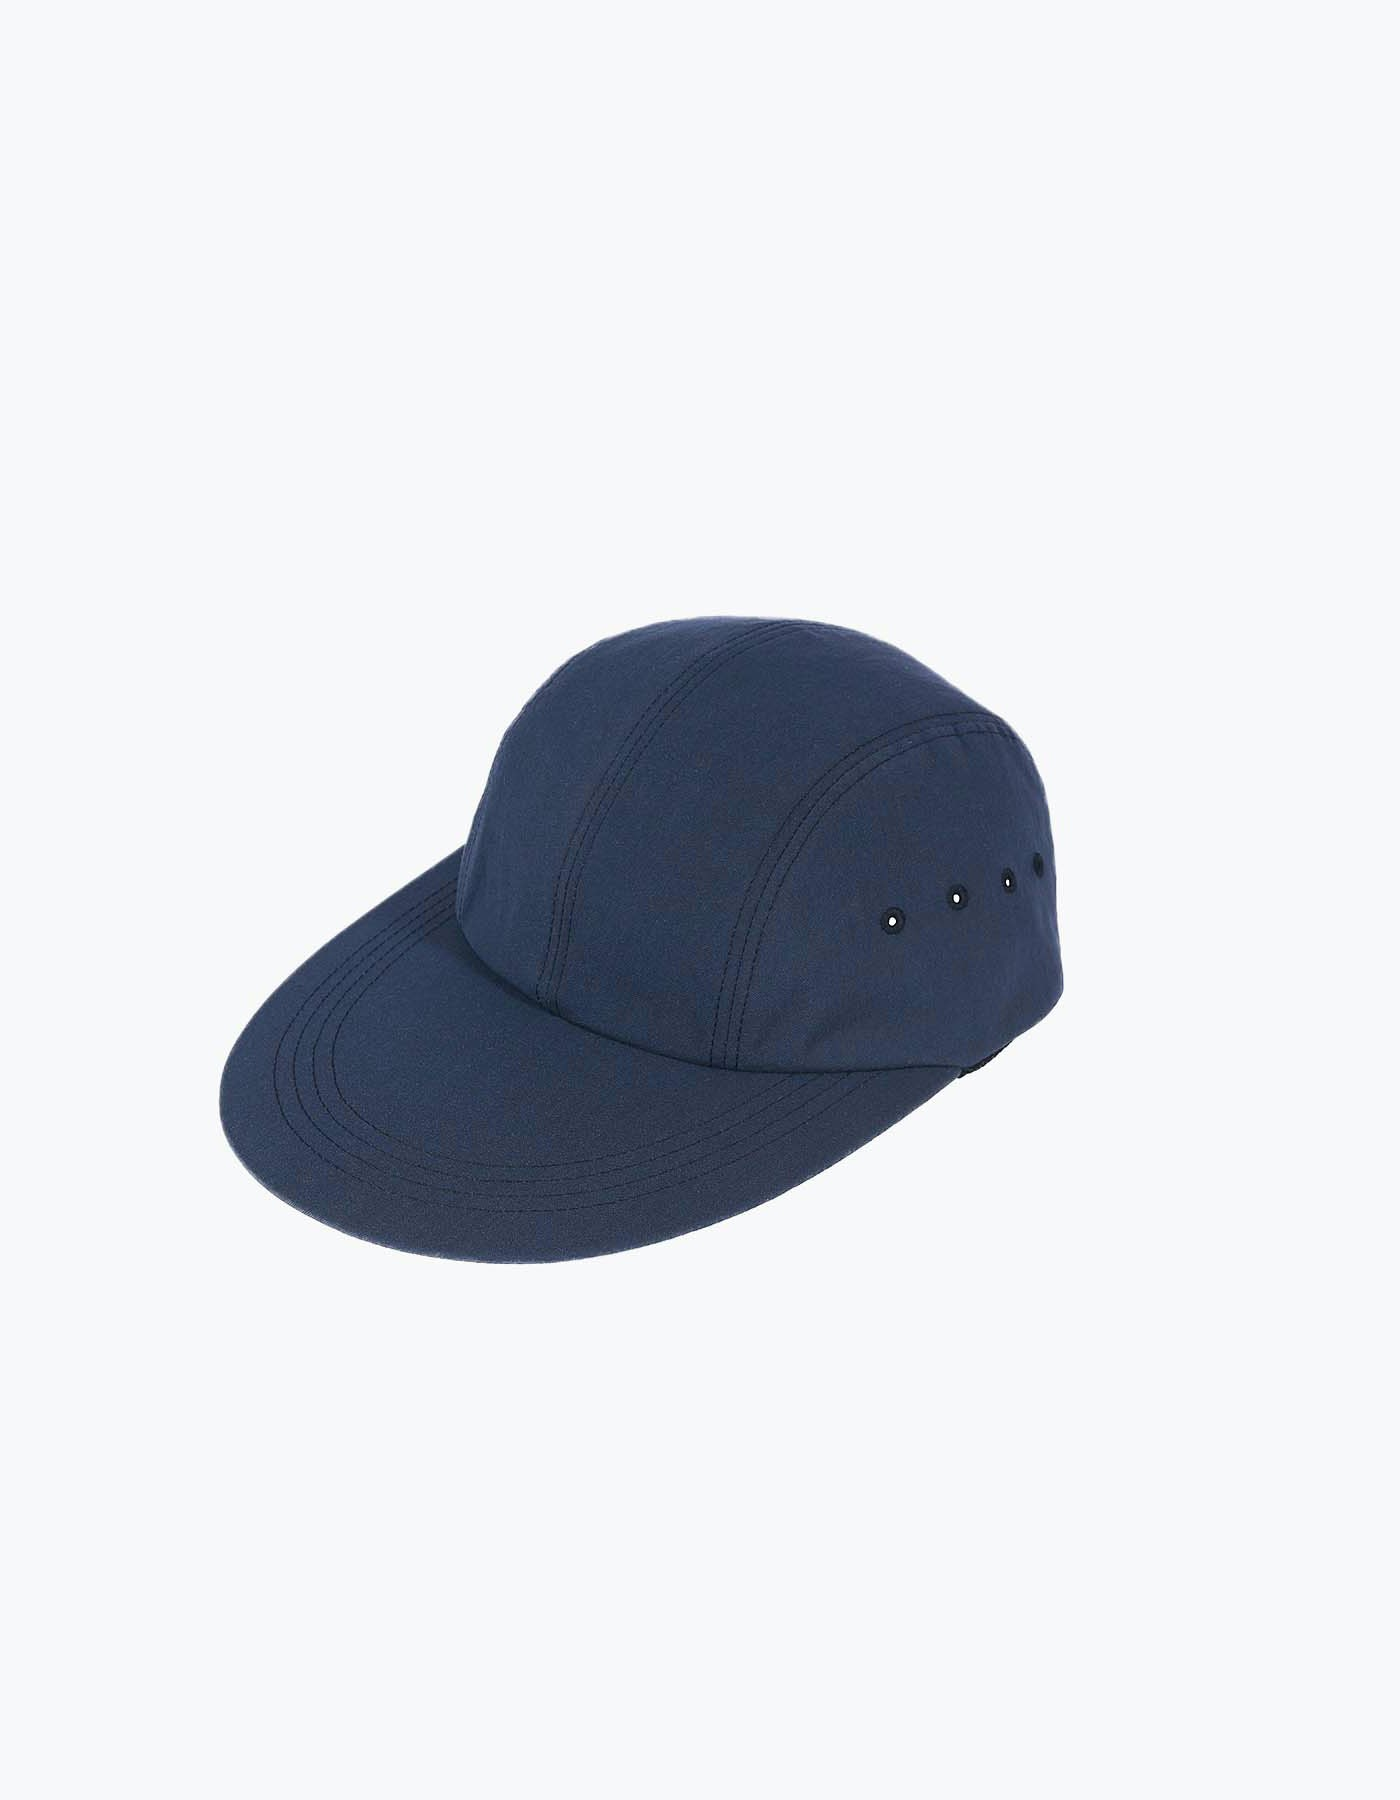 NYLON LONG BILL CAP / NAVY